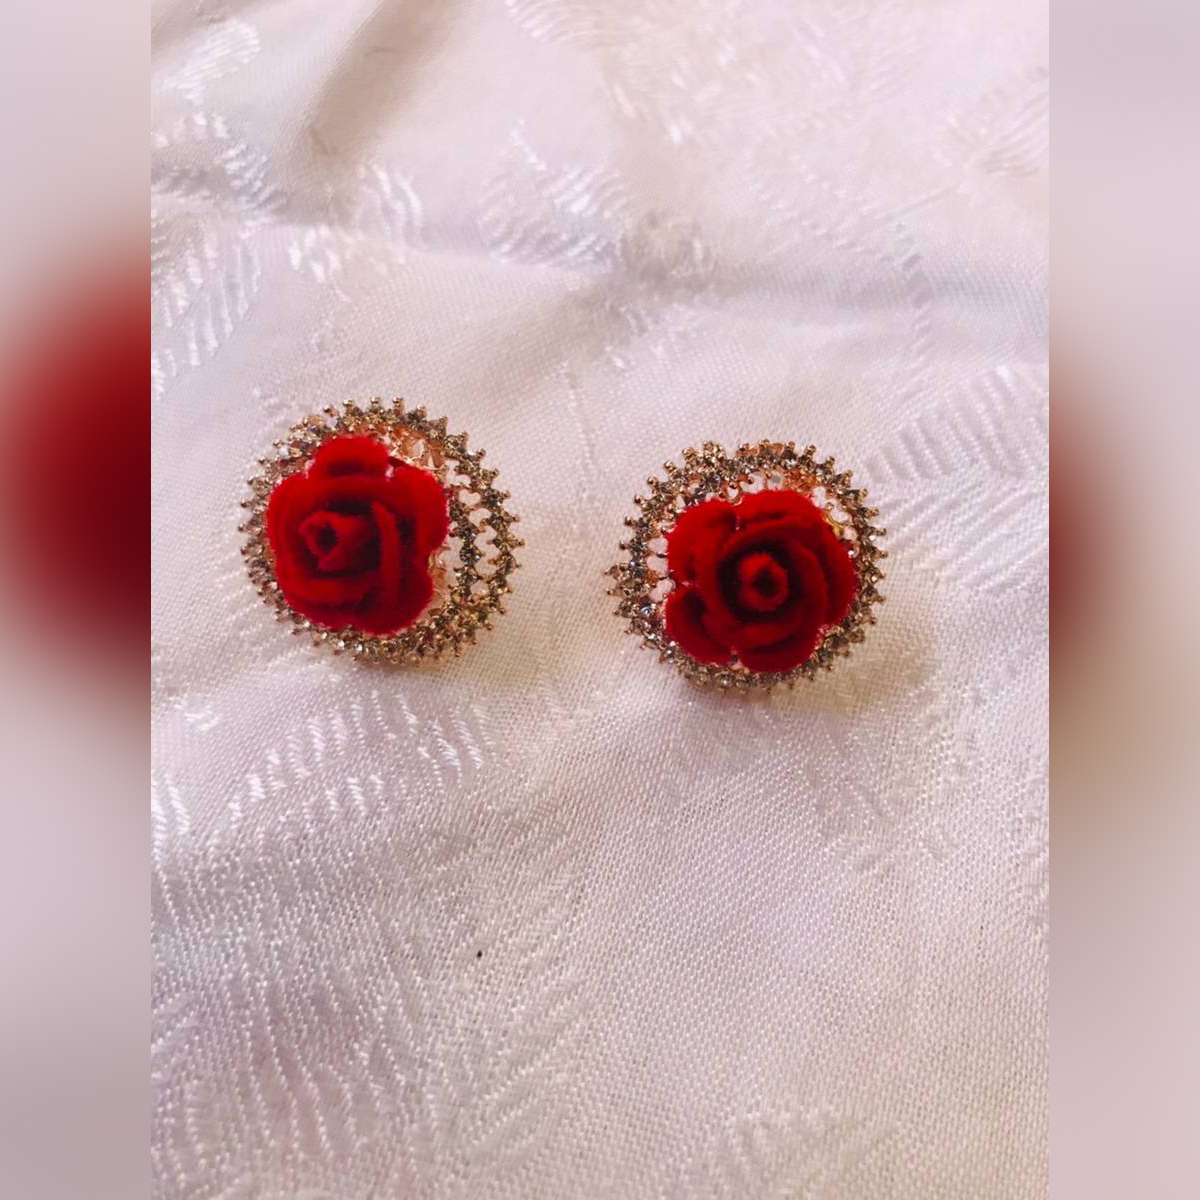 New Fashion artifical jewellery Stud and Drop Earrings Red Rose Flower Earrings For girls  Daily Wear Special Color Quality Stud Earrings for  women/girls/ladies 2 pairs girls fashion earring